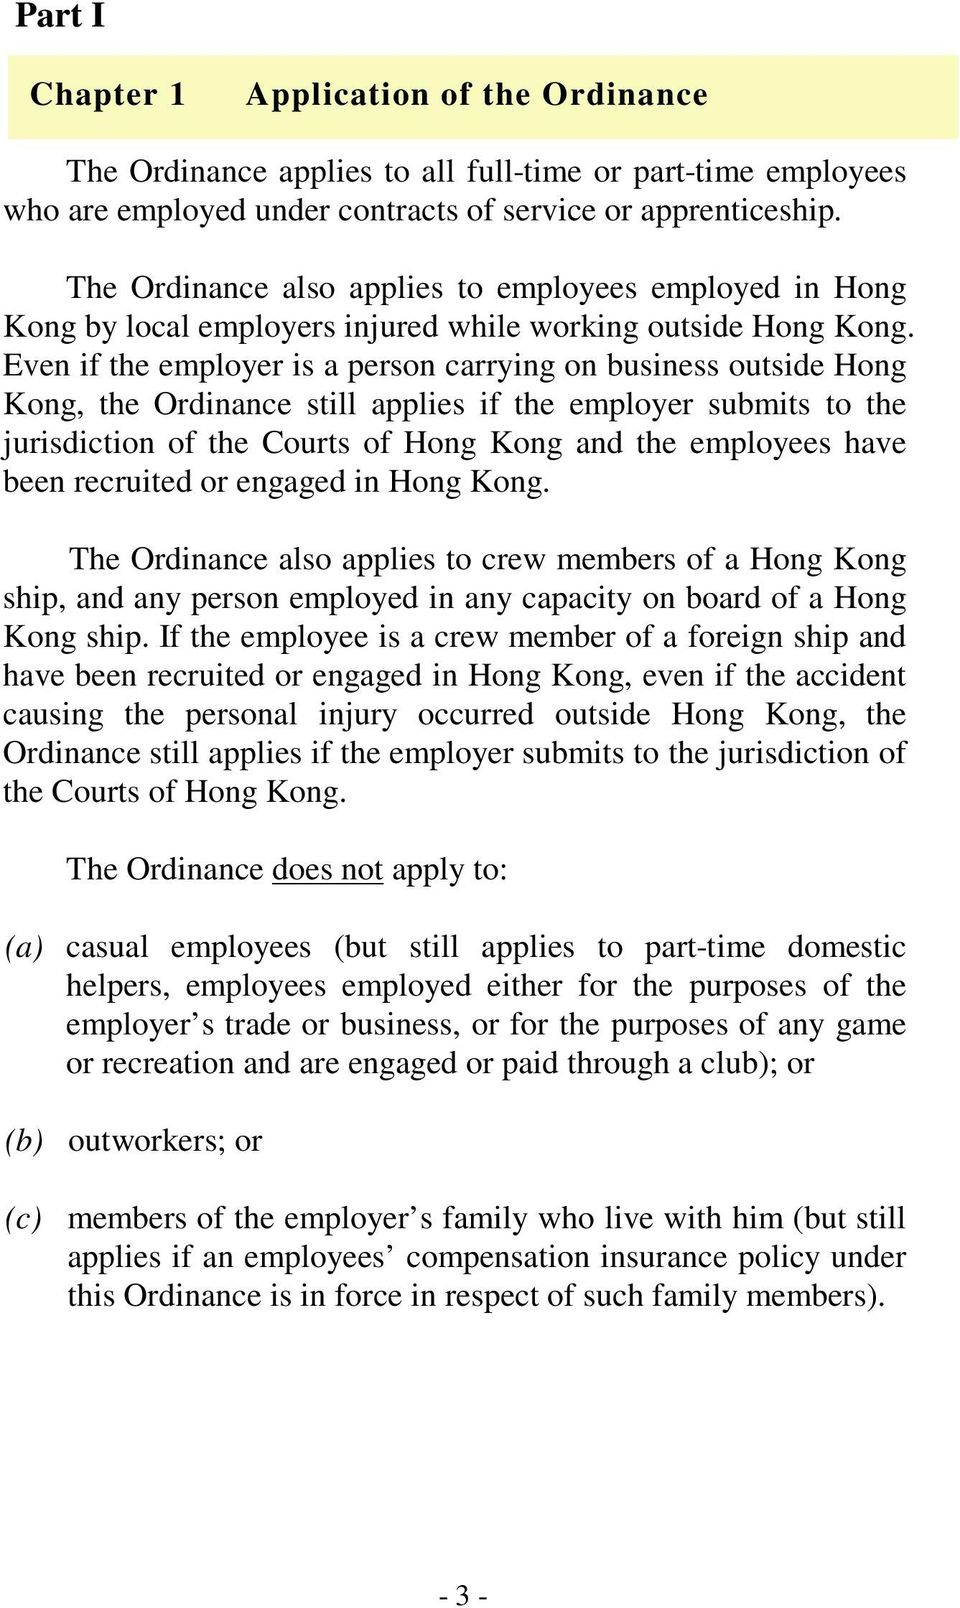 Even if the employer is a person carrying on business outside Hong Kong, the Ordinance still applies if the employer submits to the jurisdiction of the Courts of Hong Kong and the employees have been